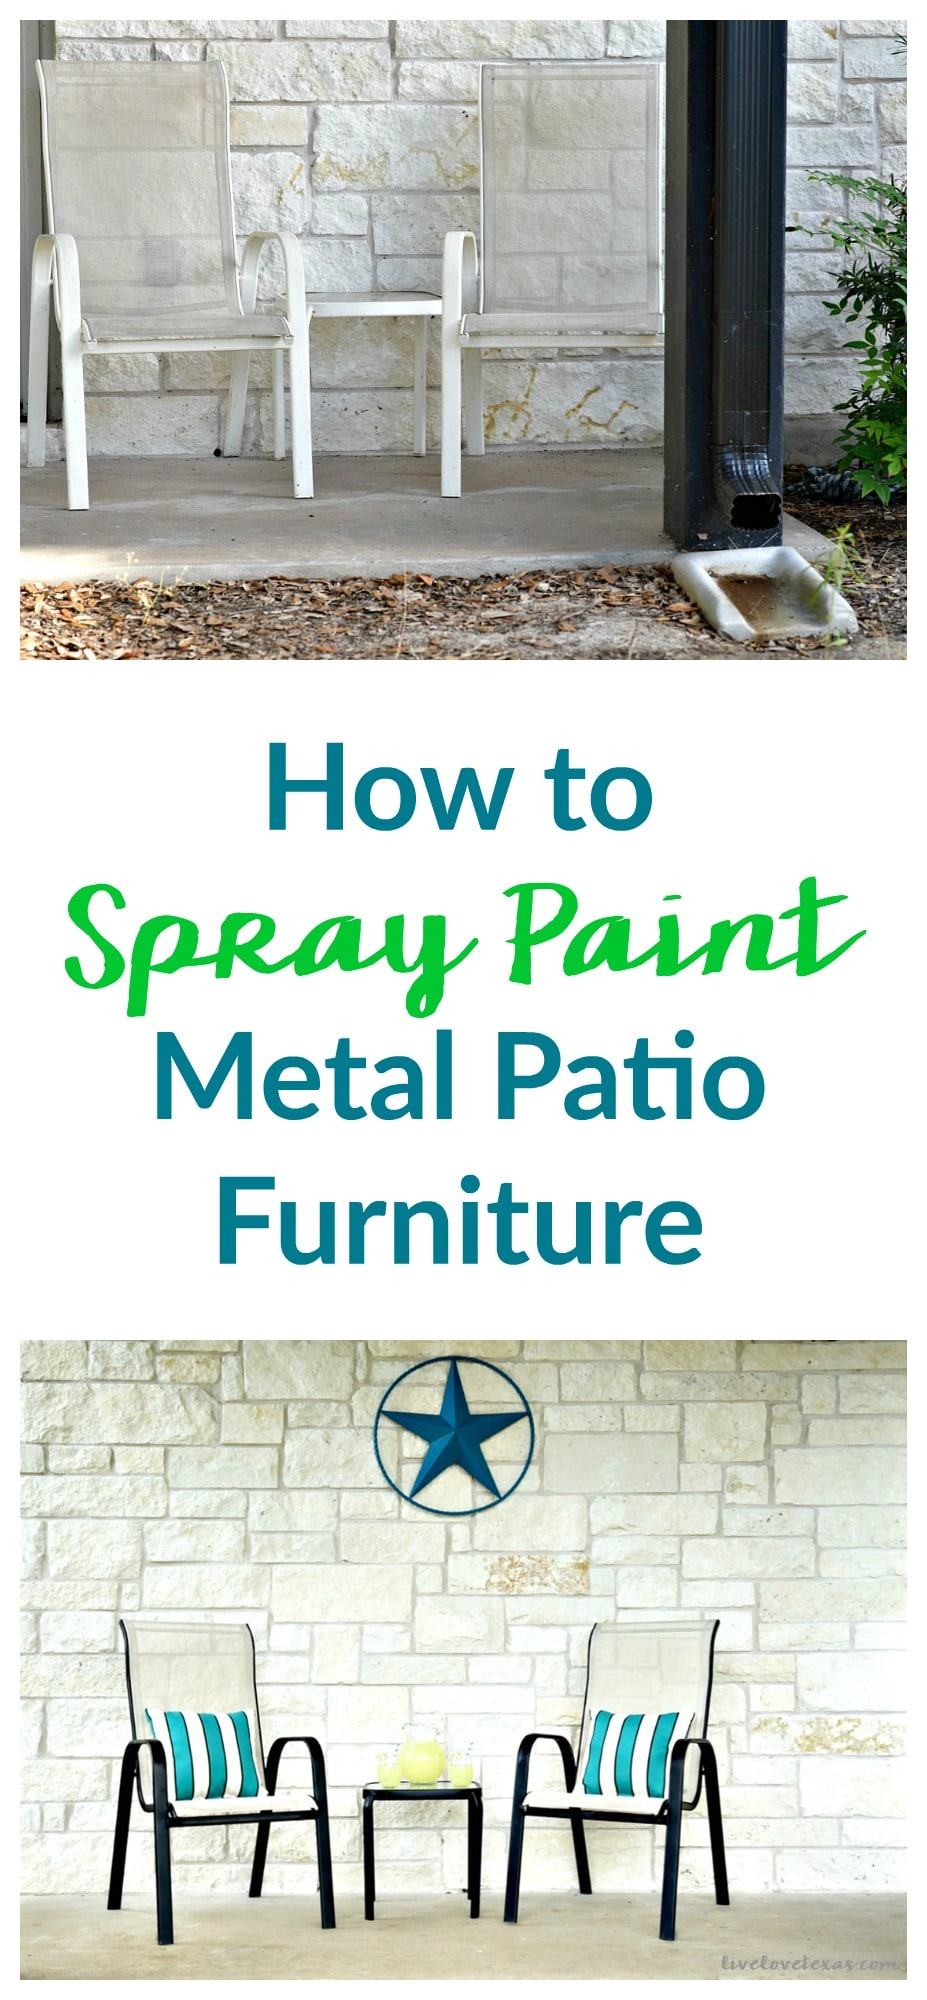 How to Spray Paint Metal Patio Furniture BeforeAfter 2